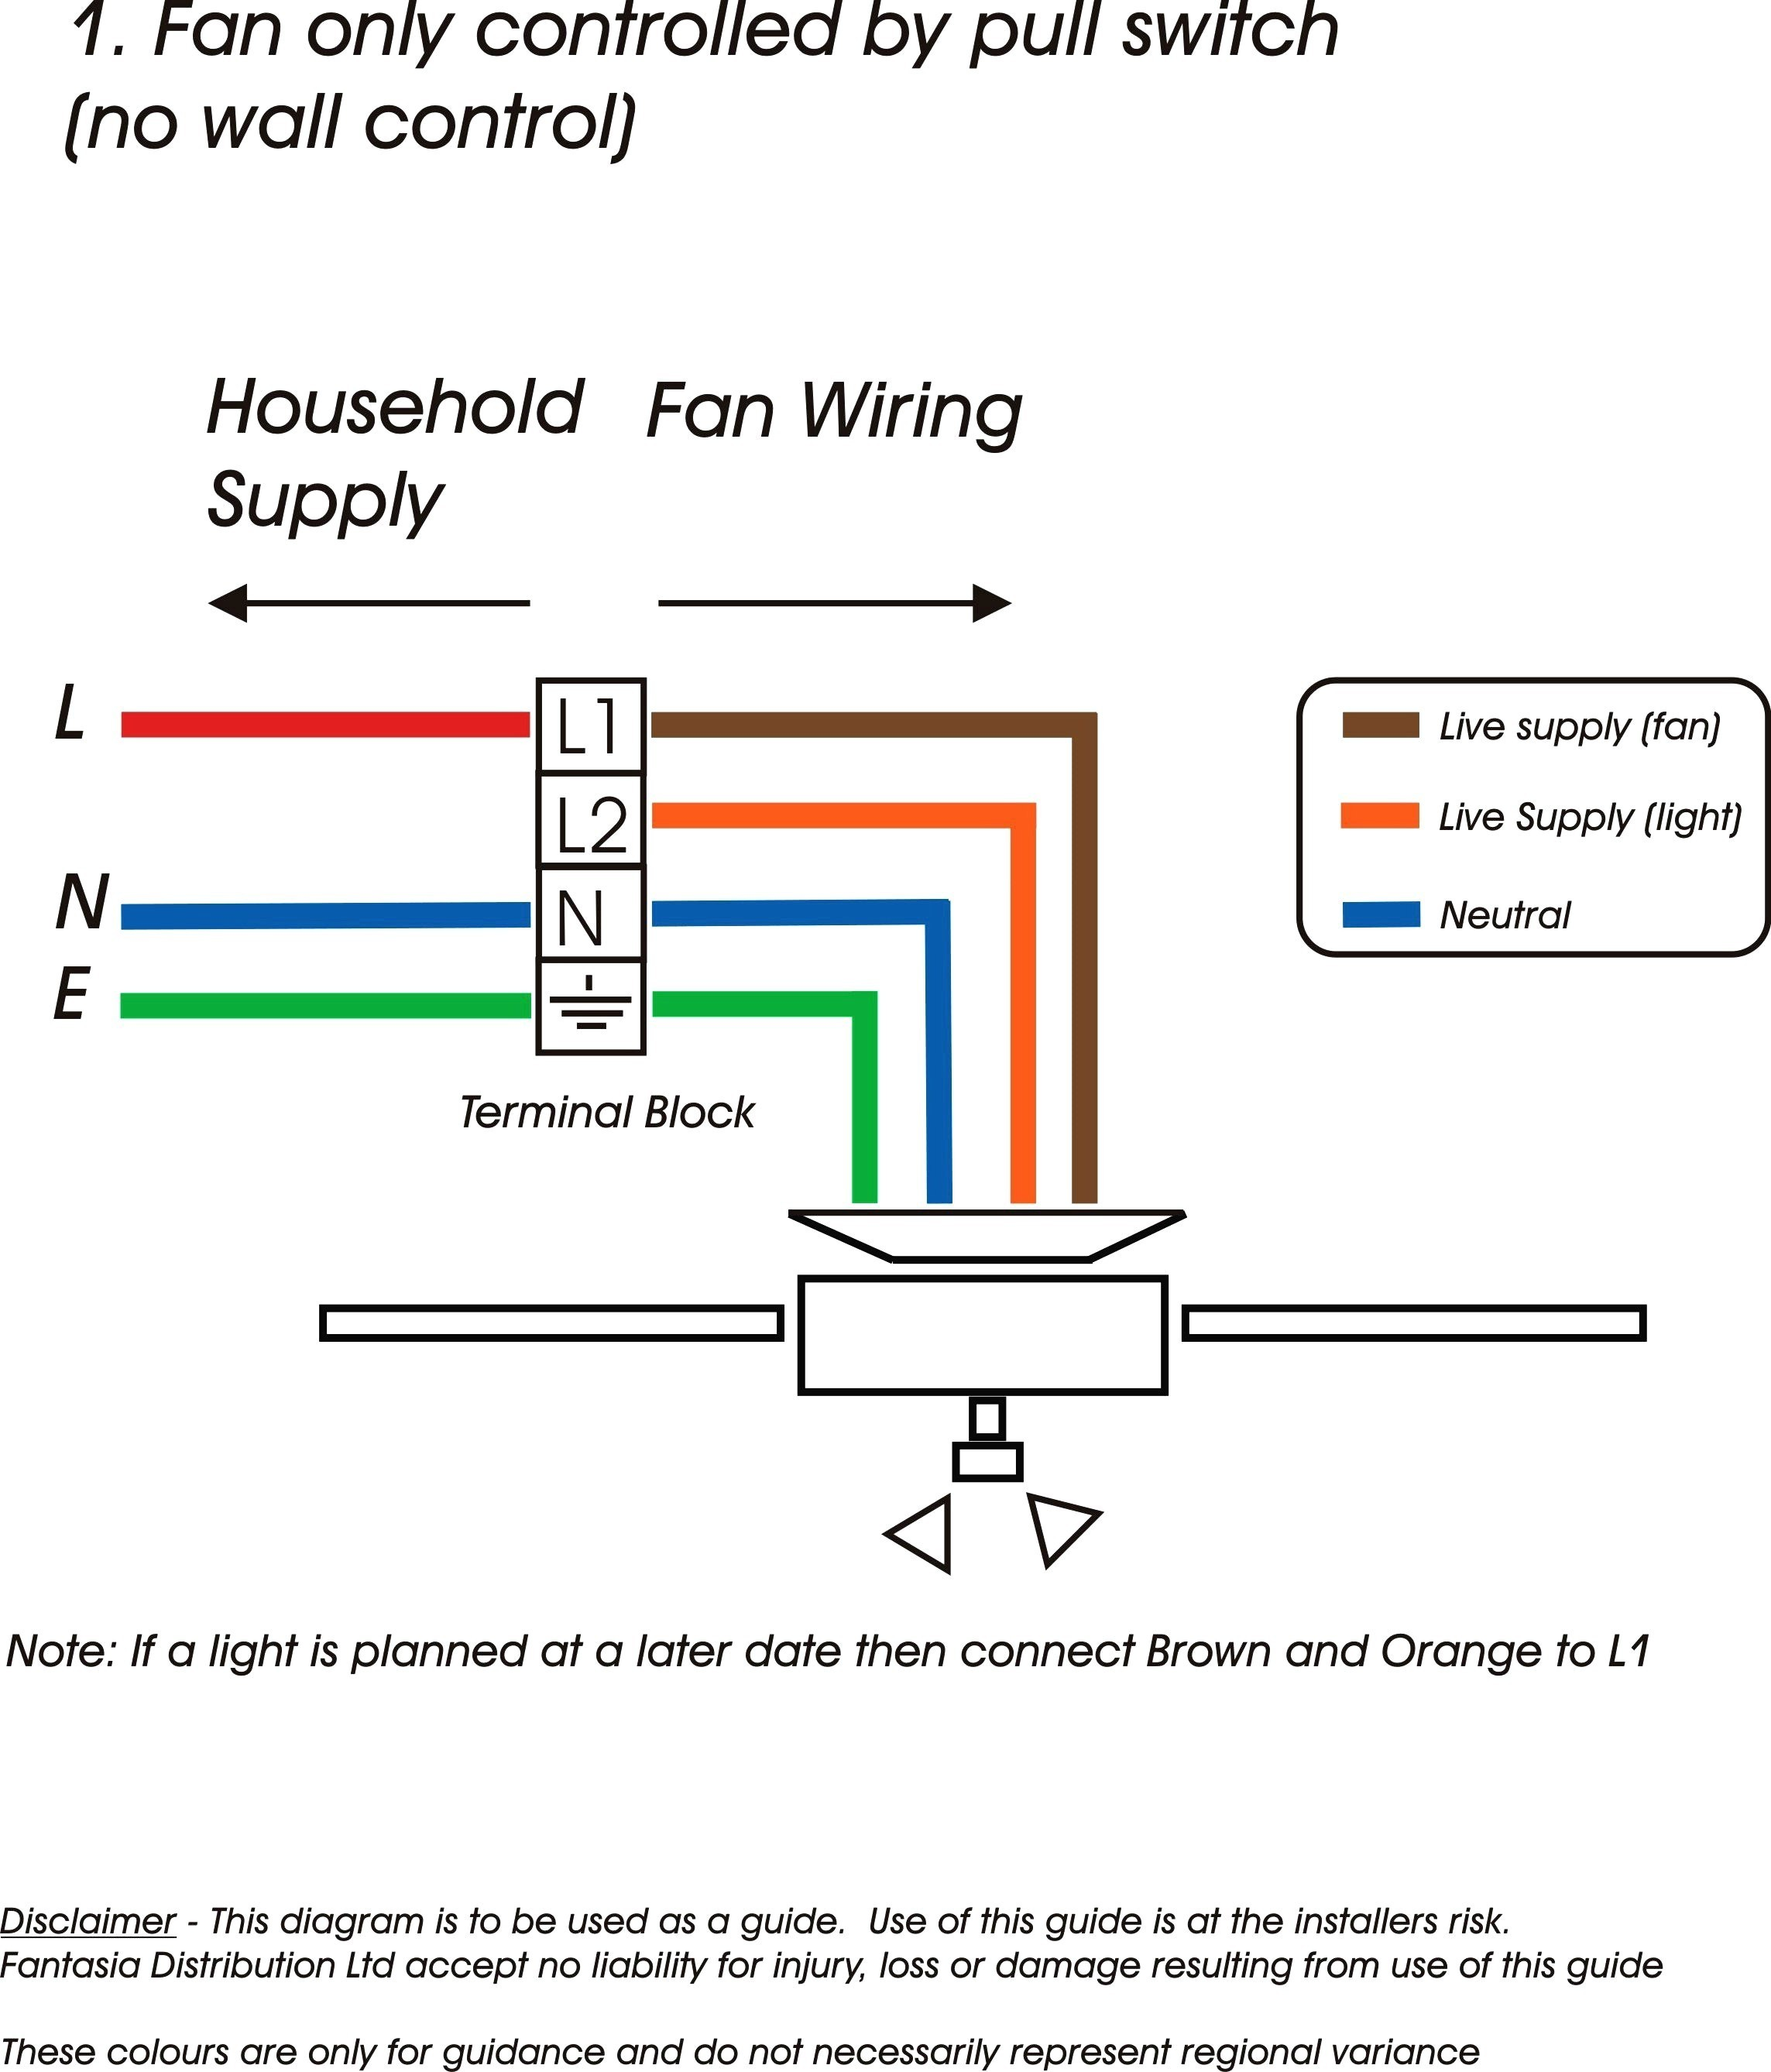 Wiring Diagram For Single Pole Switch With Pilot Light New How To Wire A Single Pole Light Switch Fresh Leviton Single Pole